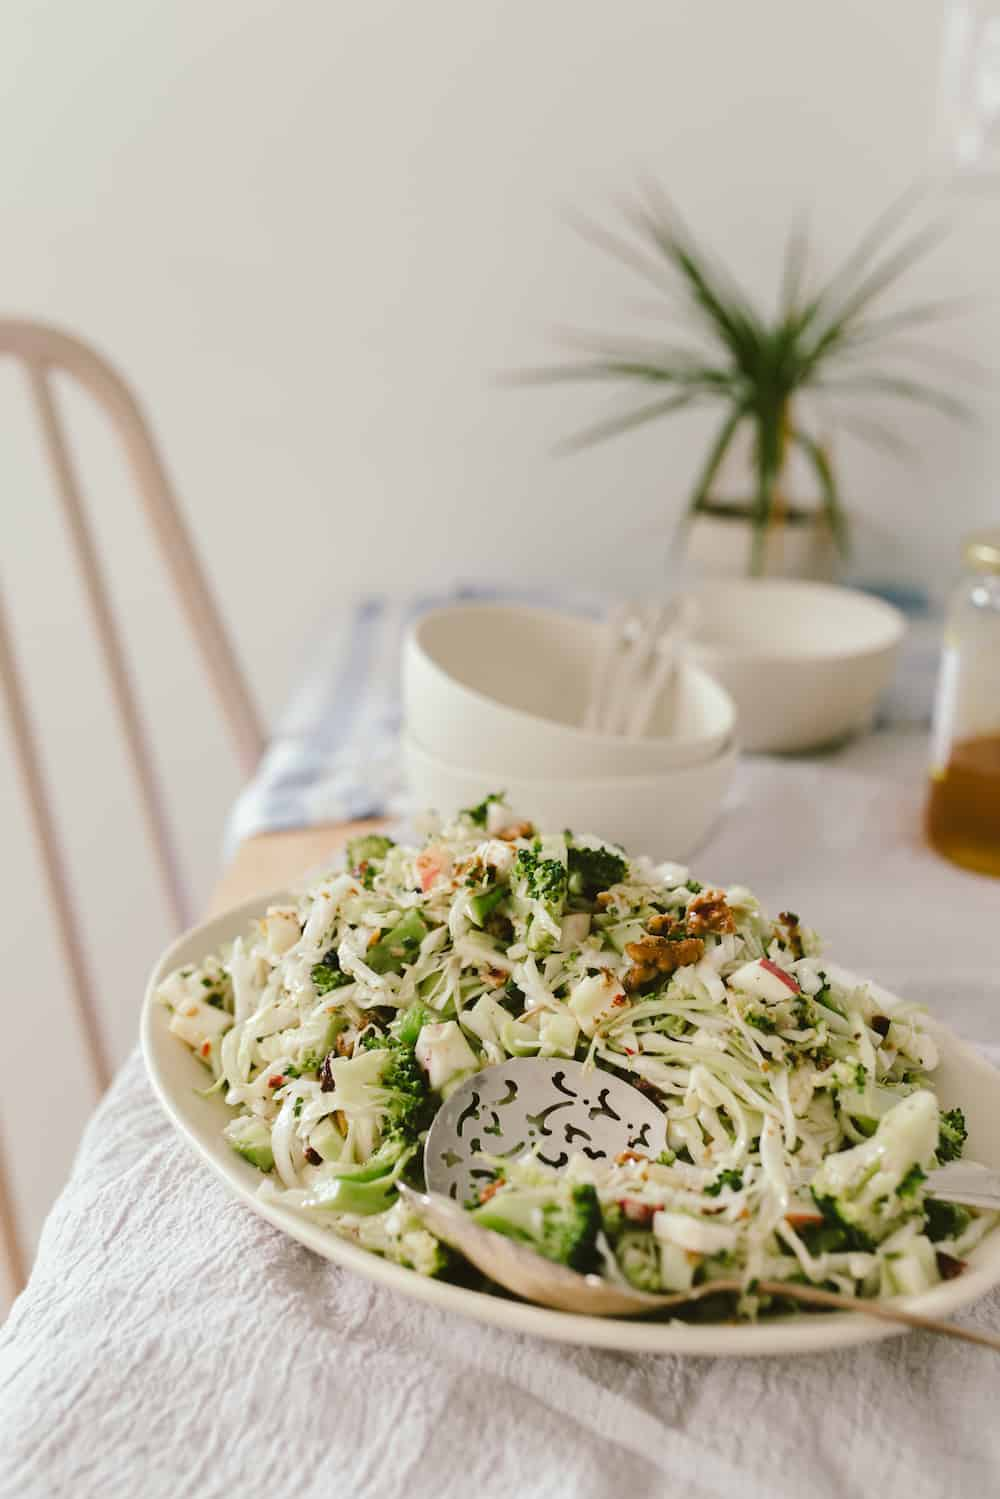 Waldorf Broccoli Salad Recipes With Apple Amp Yogurt Dressing